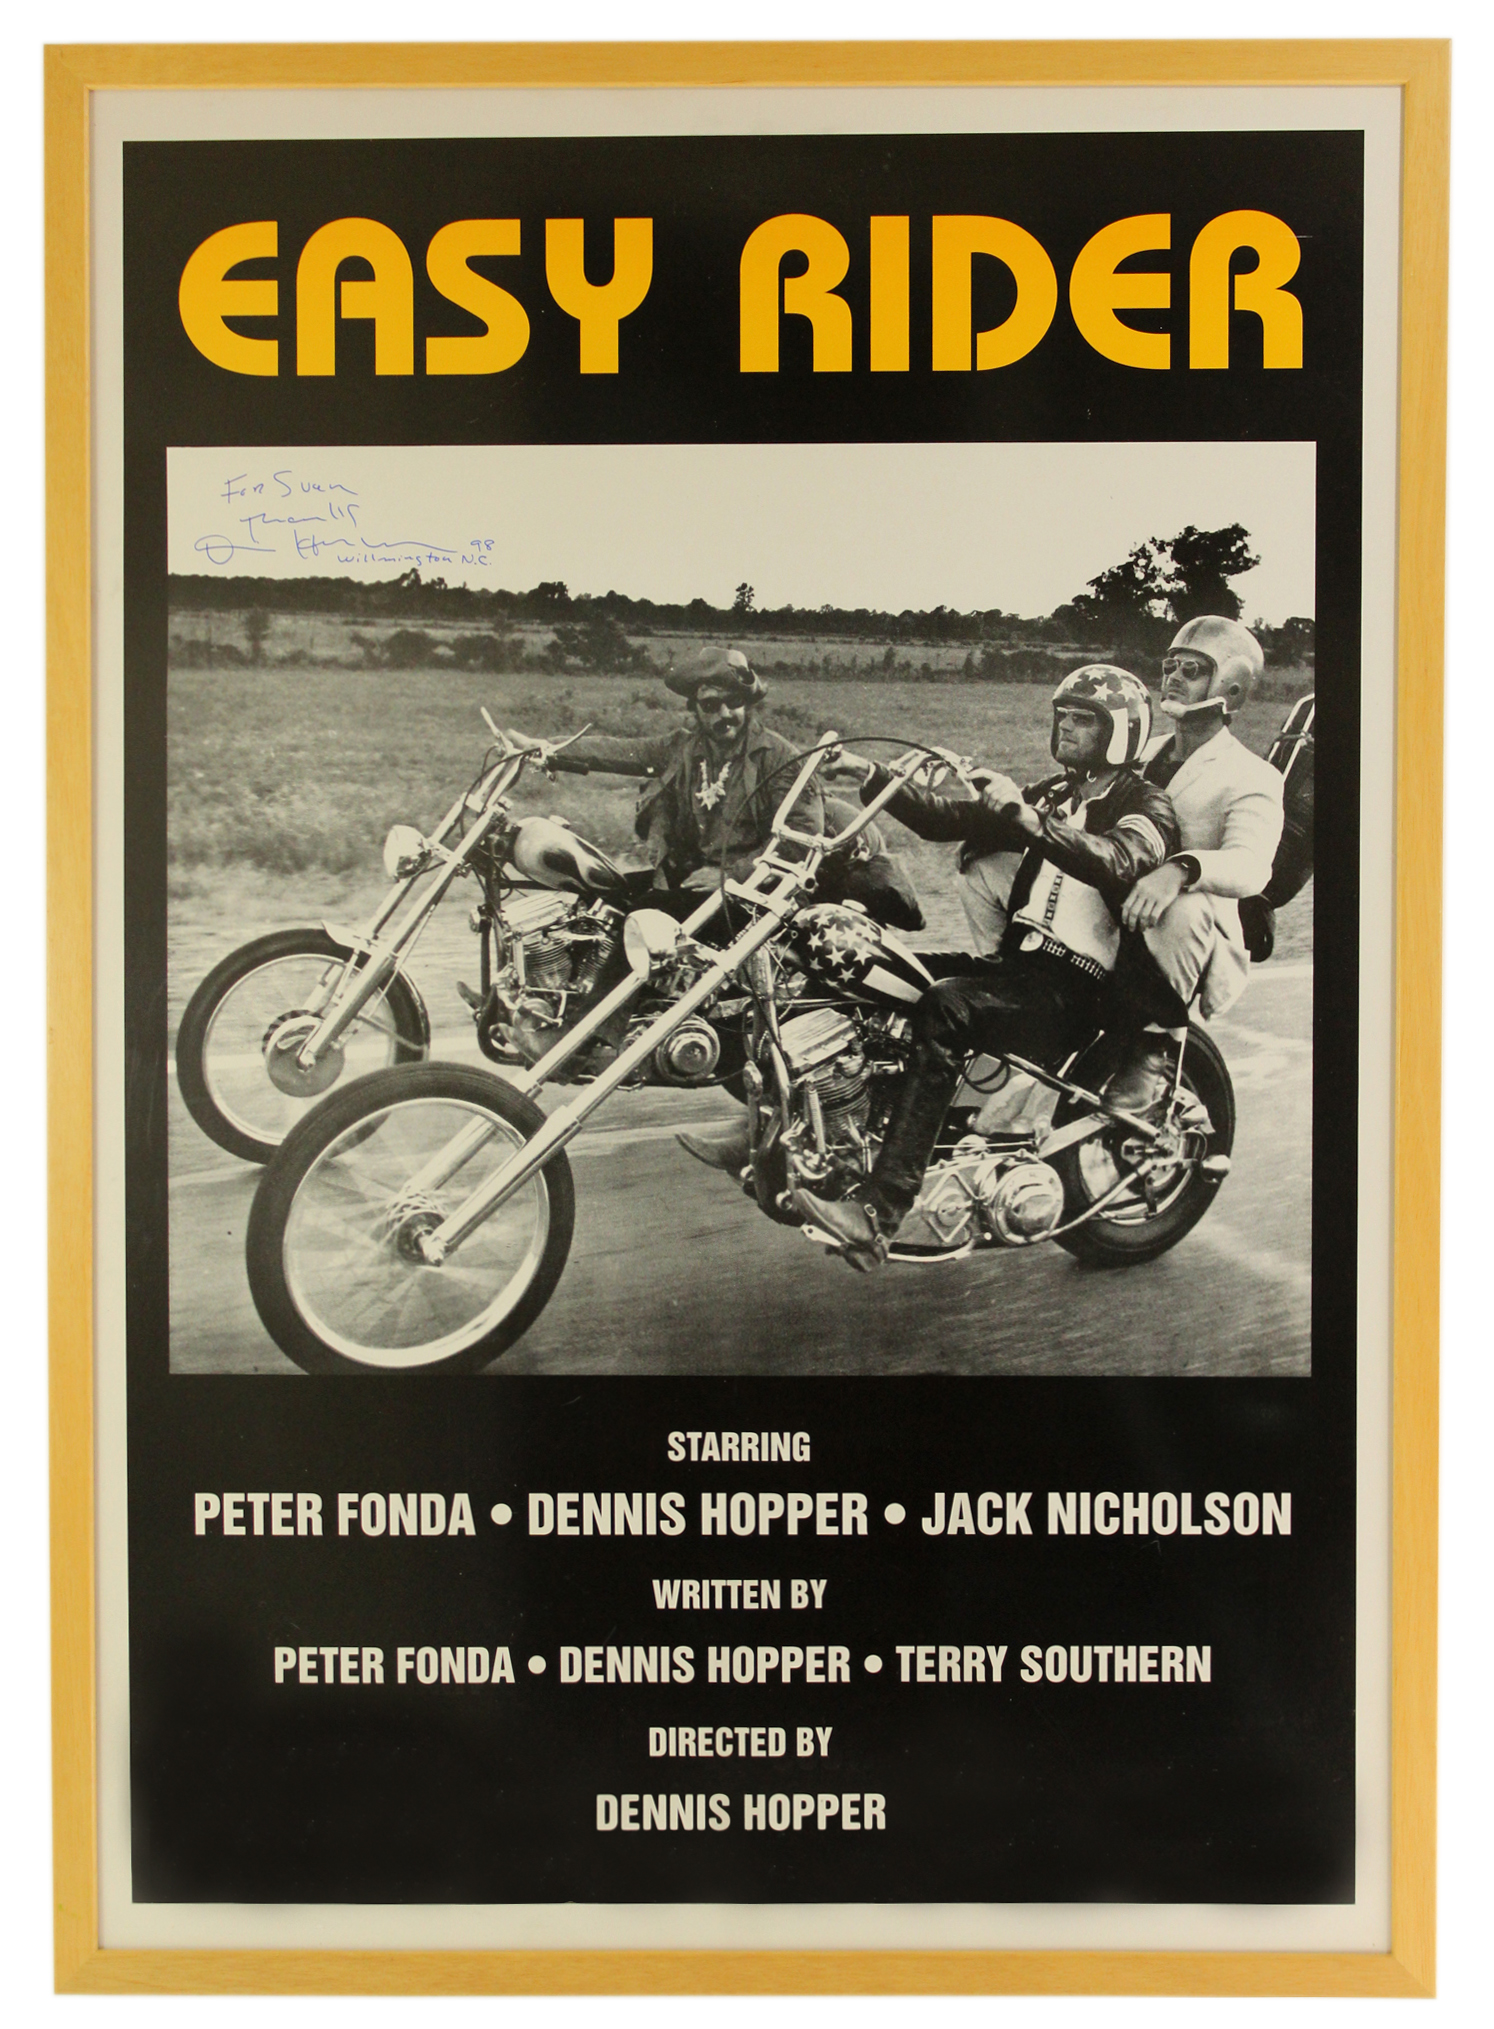 Dennis Hopper Signed Easy Rider Poster Chairish